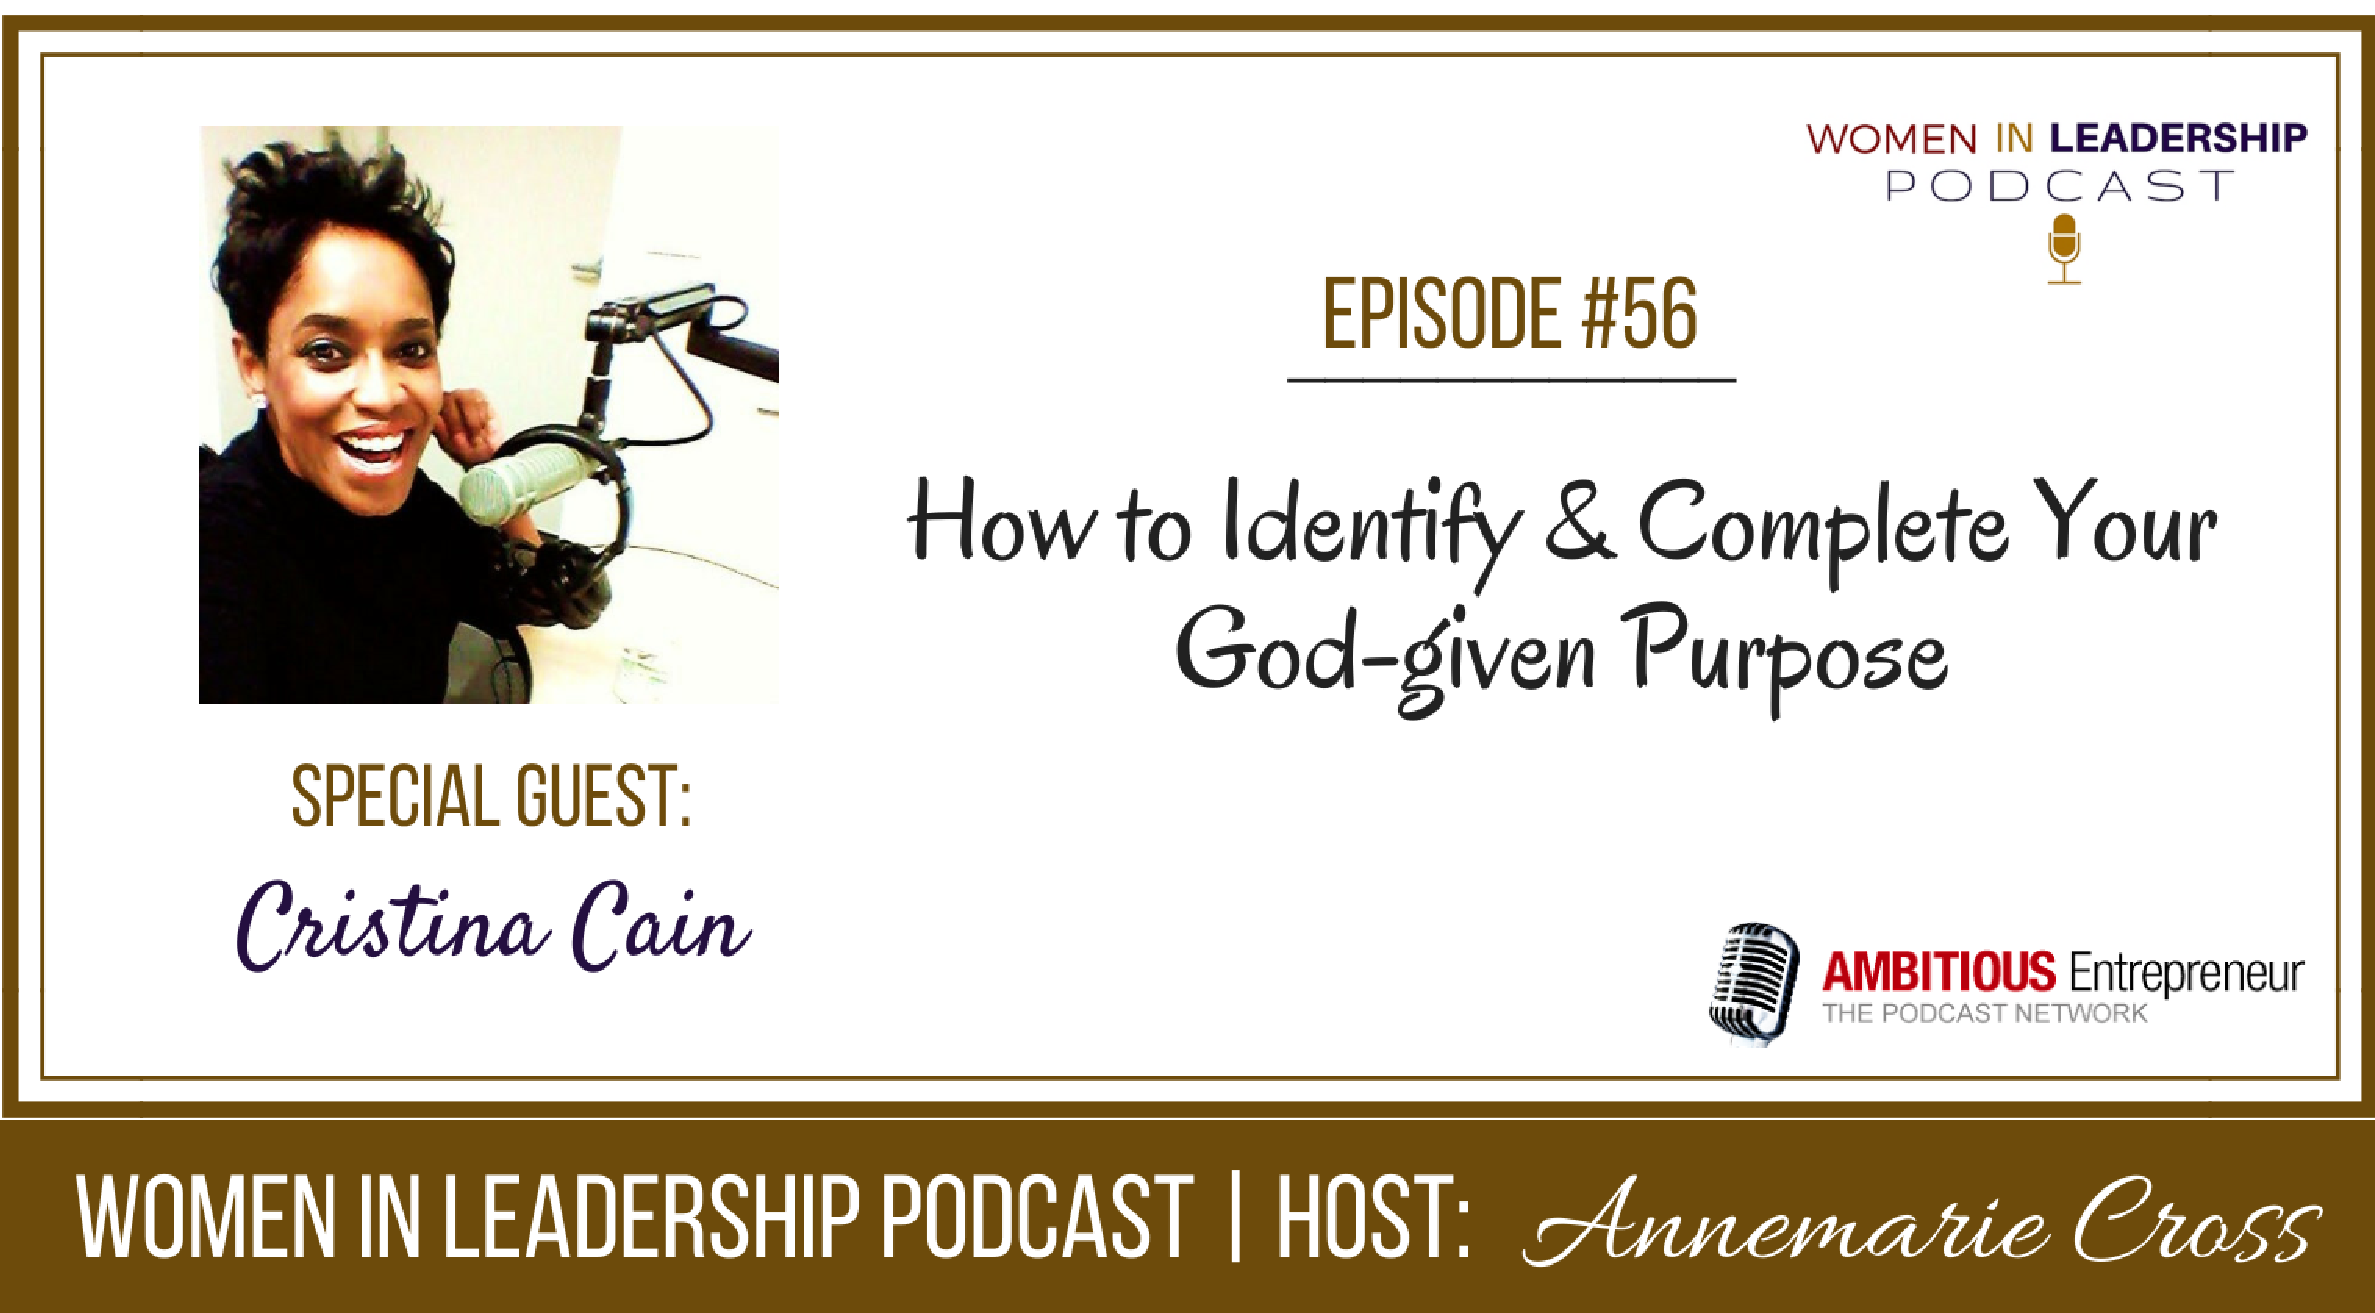 [Ep #56] How to Identify & Complete Your God-given Purpose